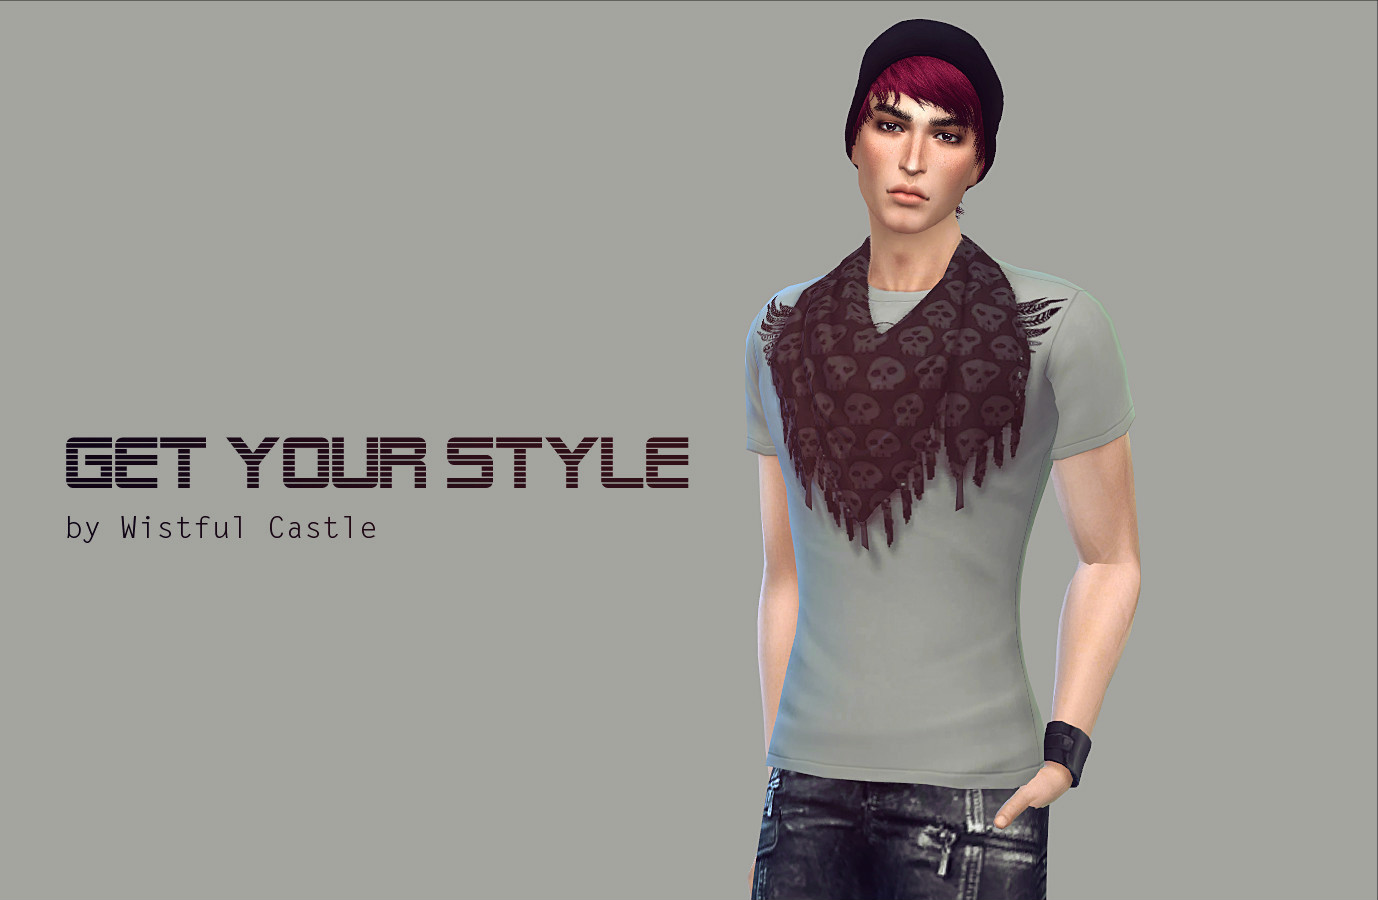 Get your style by Wistful Castle